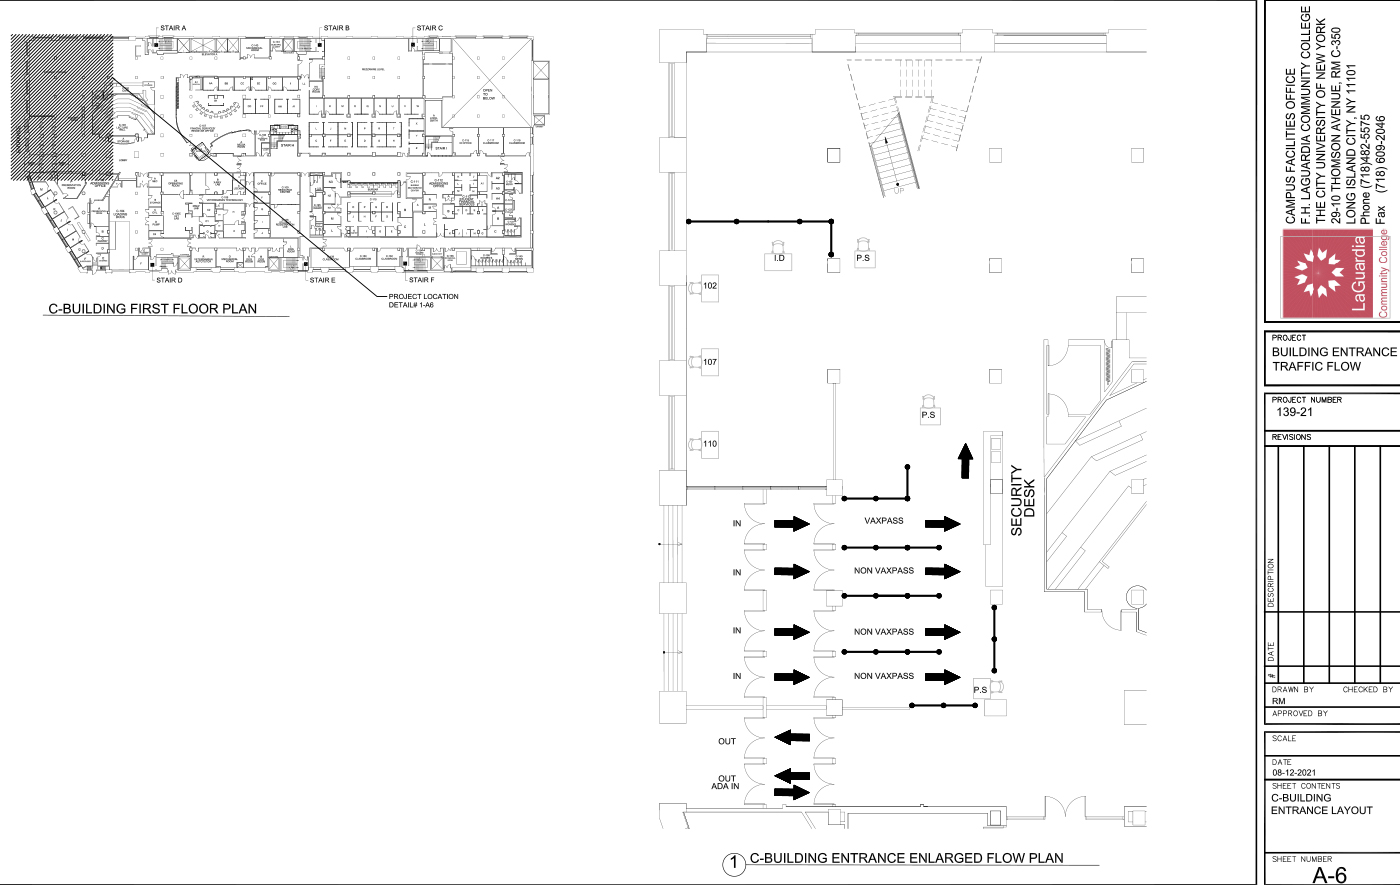 LaGuardia's campus facilities E-building  5th floor_ office suite layout